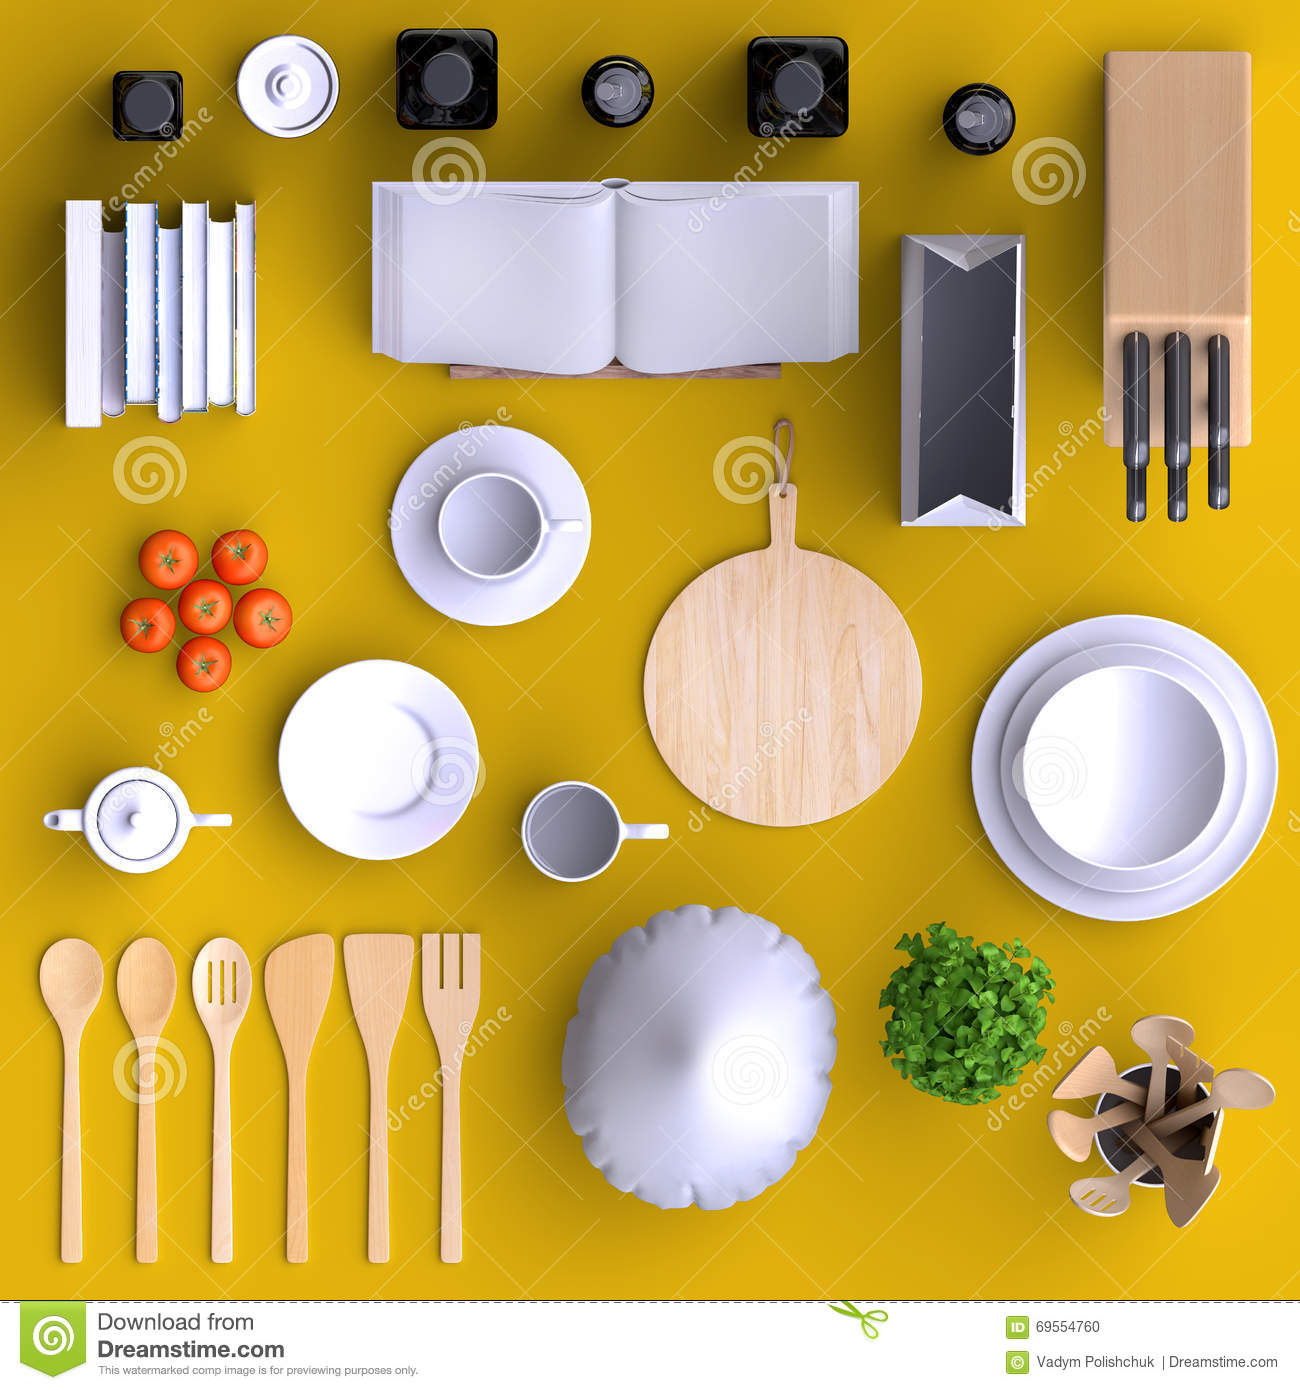 Branding Mock Up Kitchen With Table And Kitchenware. Stock